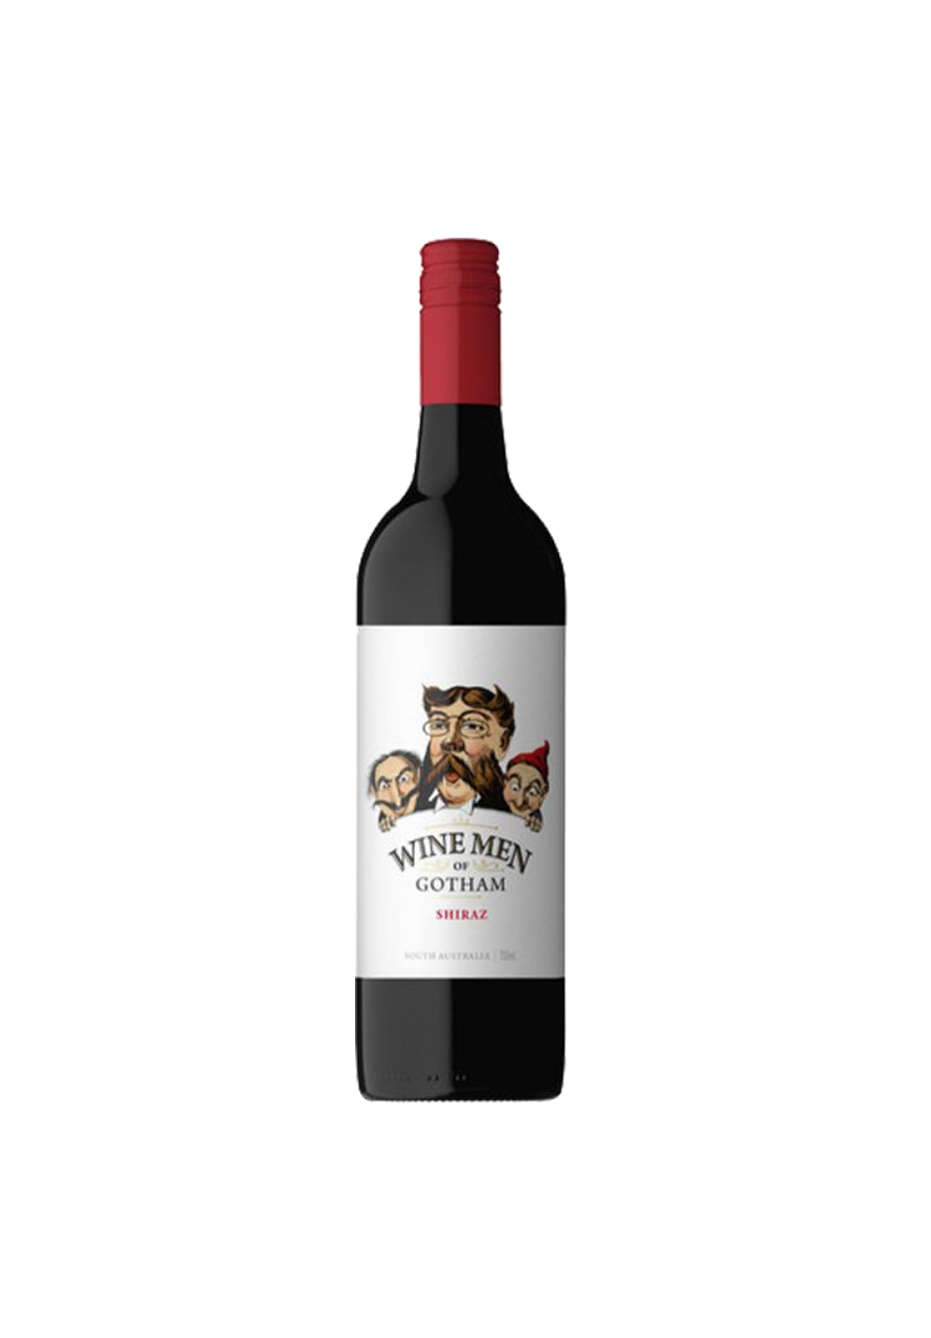 Wine Men Of Gotham South Australian Shiraz 2017